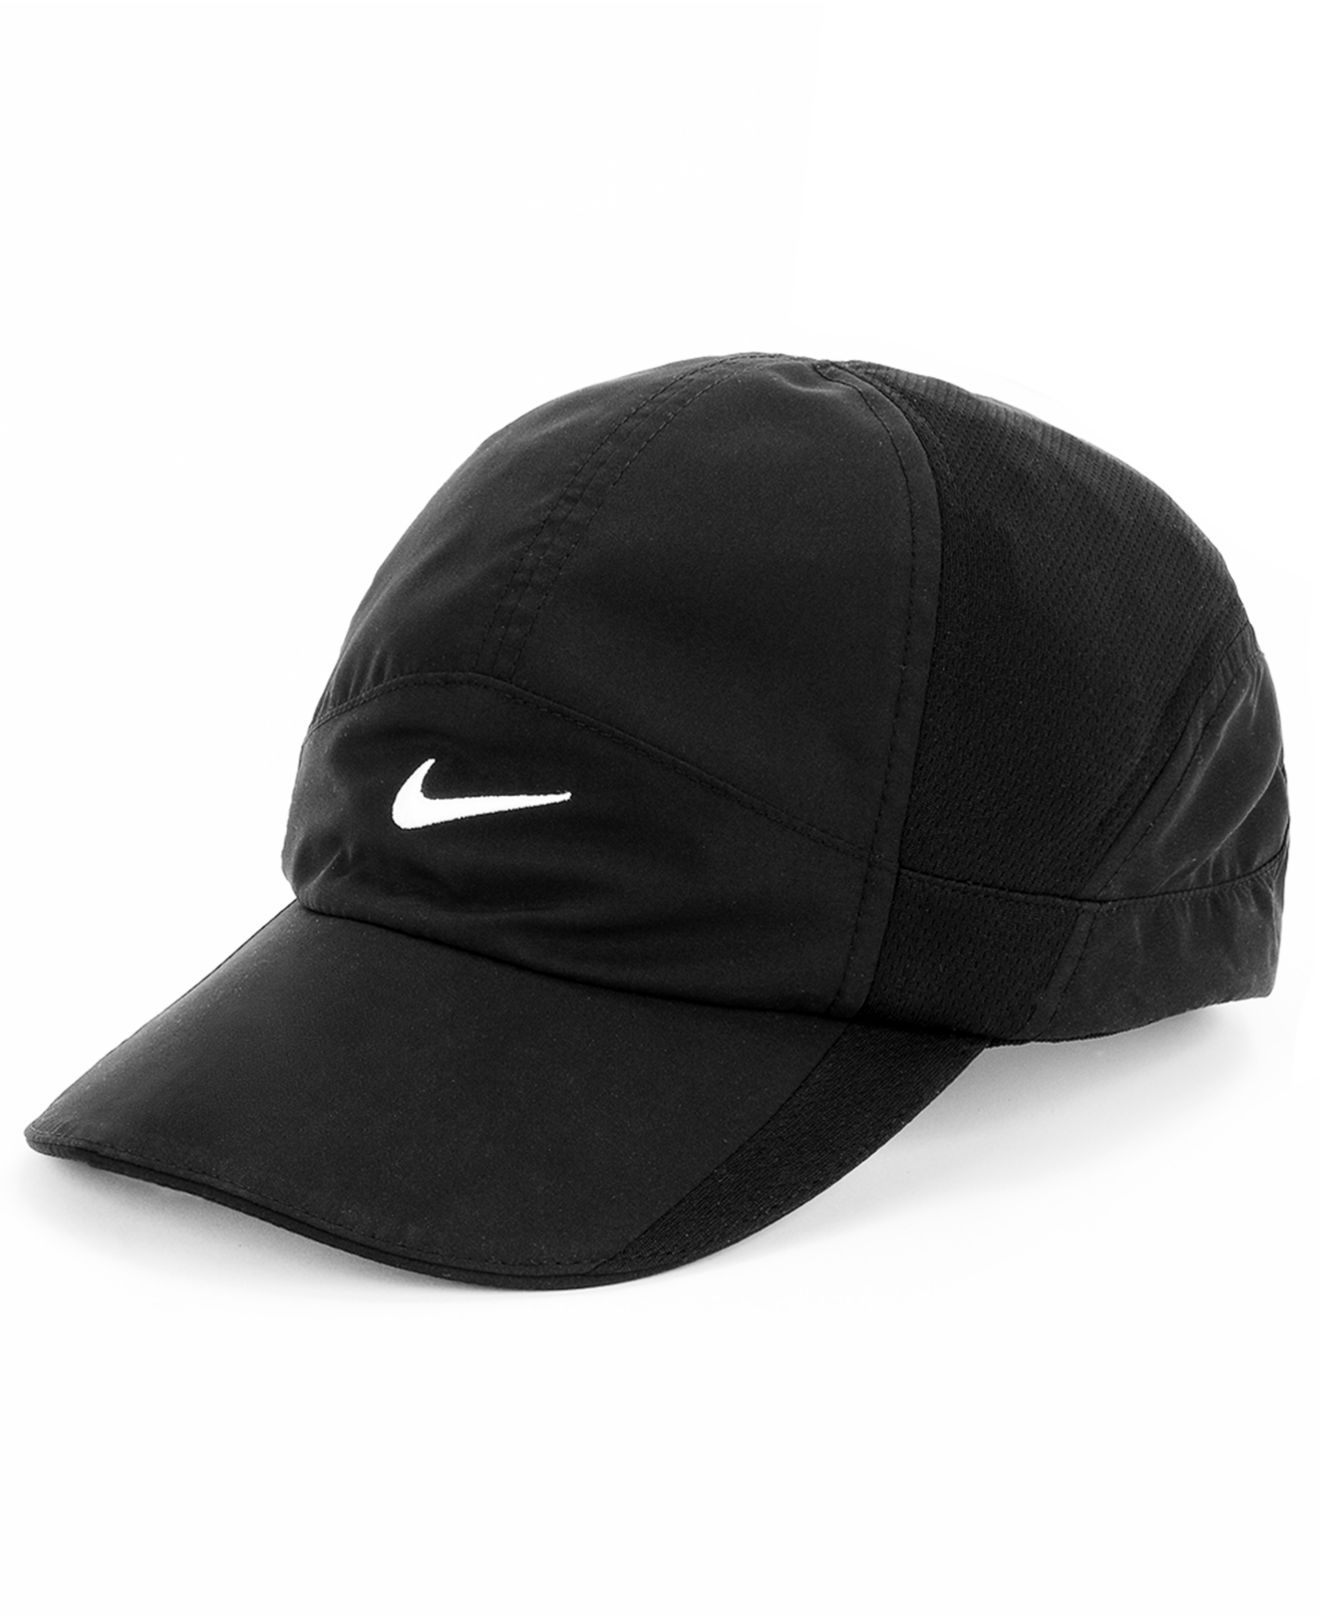 sale retailer 939d9 f28d6 Nike Featherlight 2.0 Dri-Fit Sports Cap in Black - Lyst